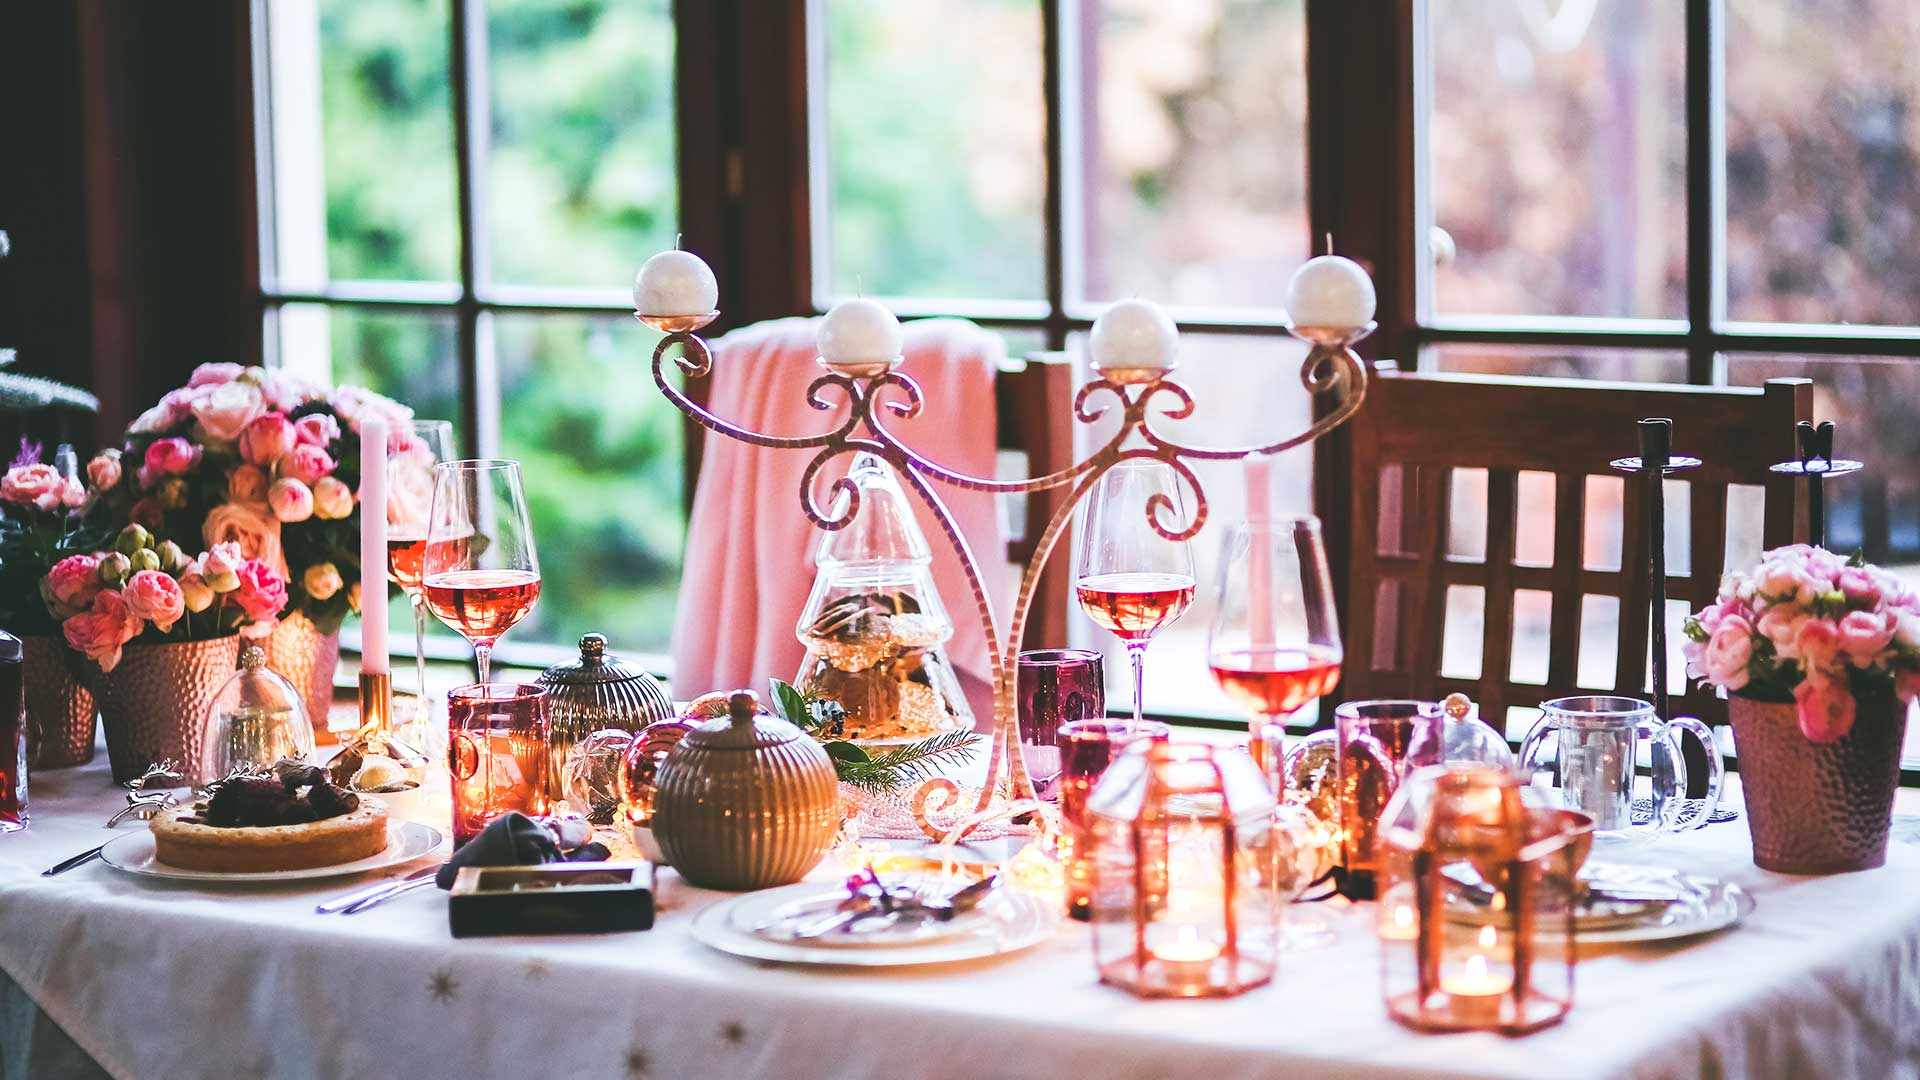 Table setting with wine glasses, mini lanterns and flower pots.